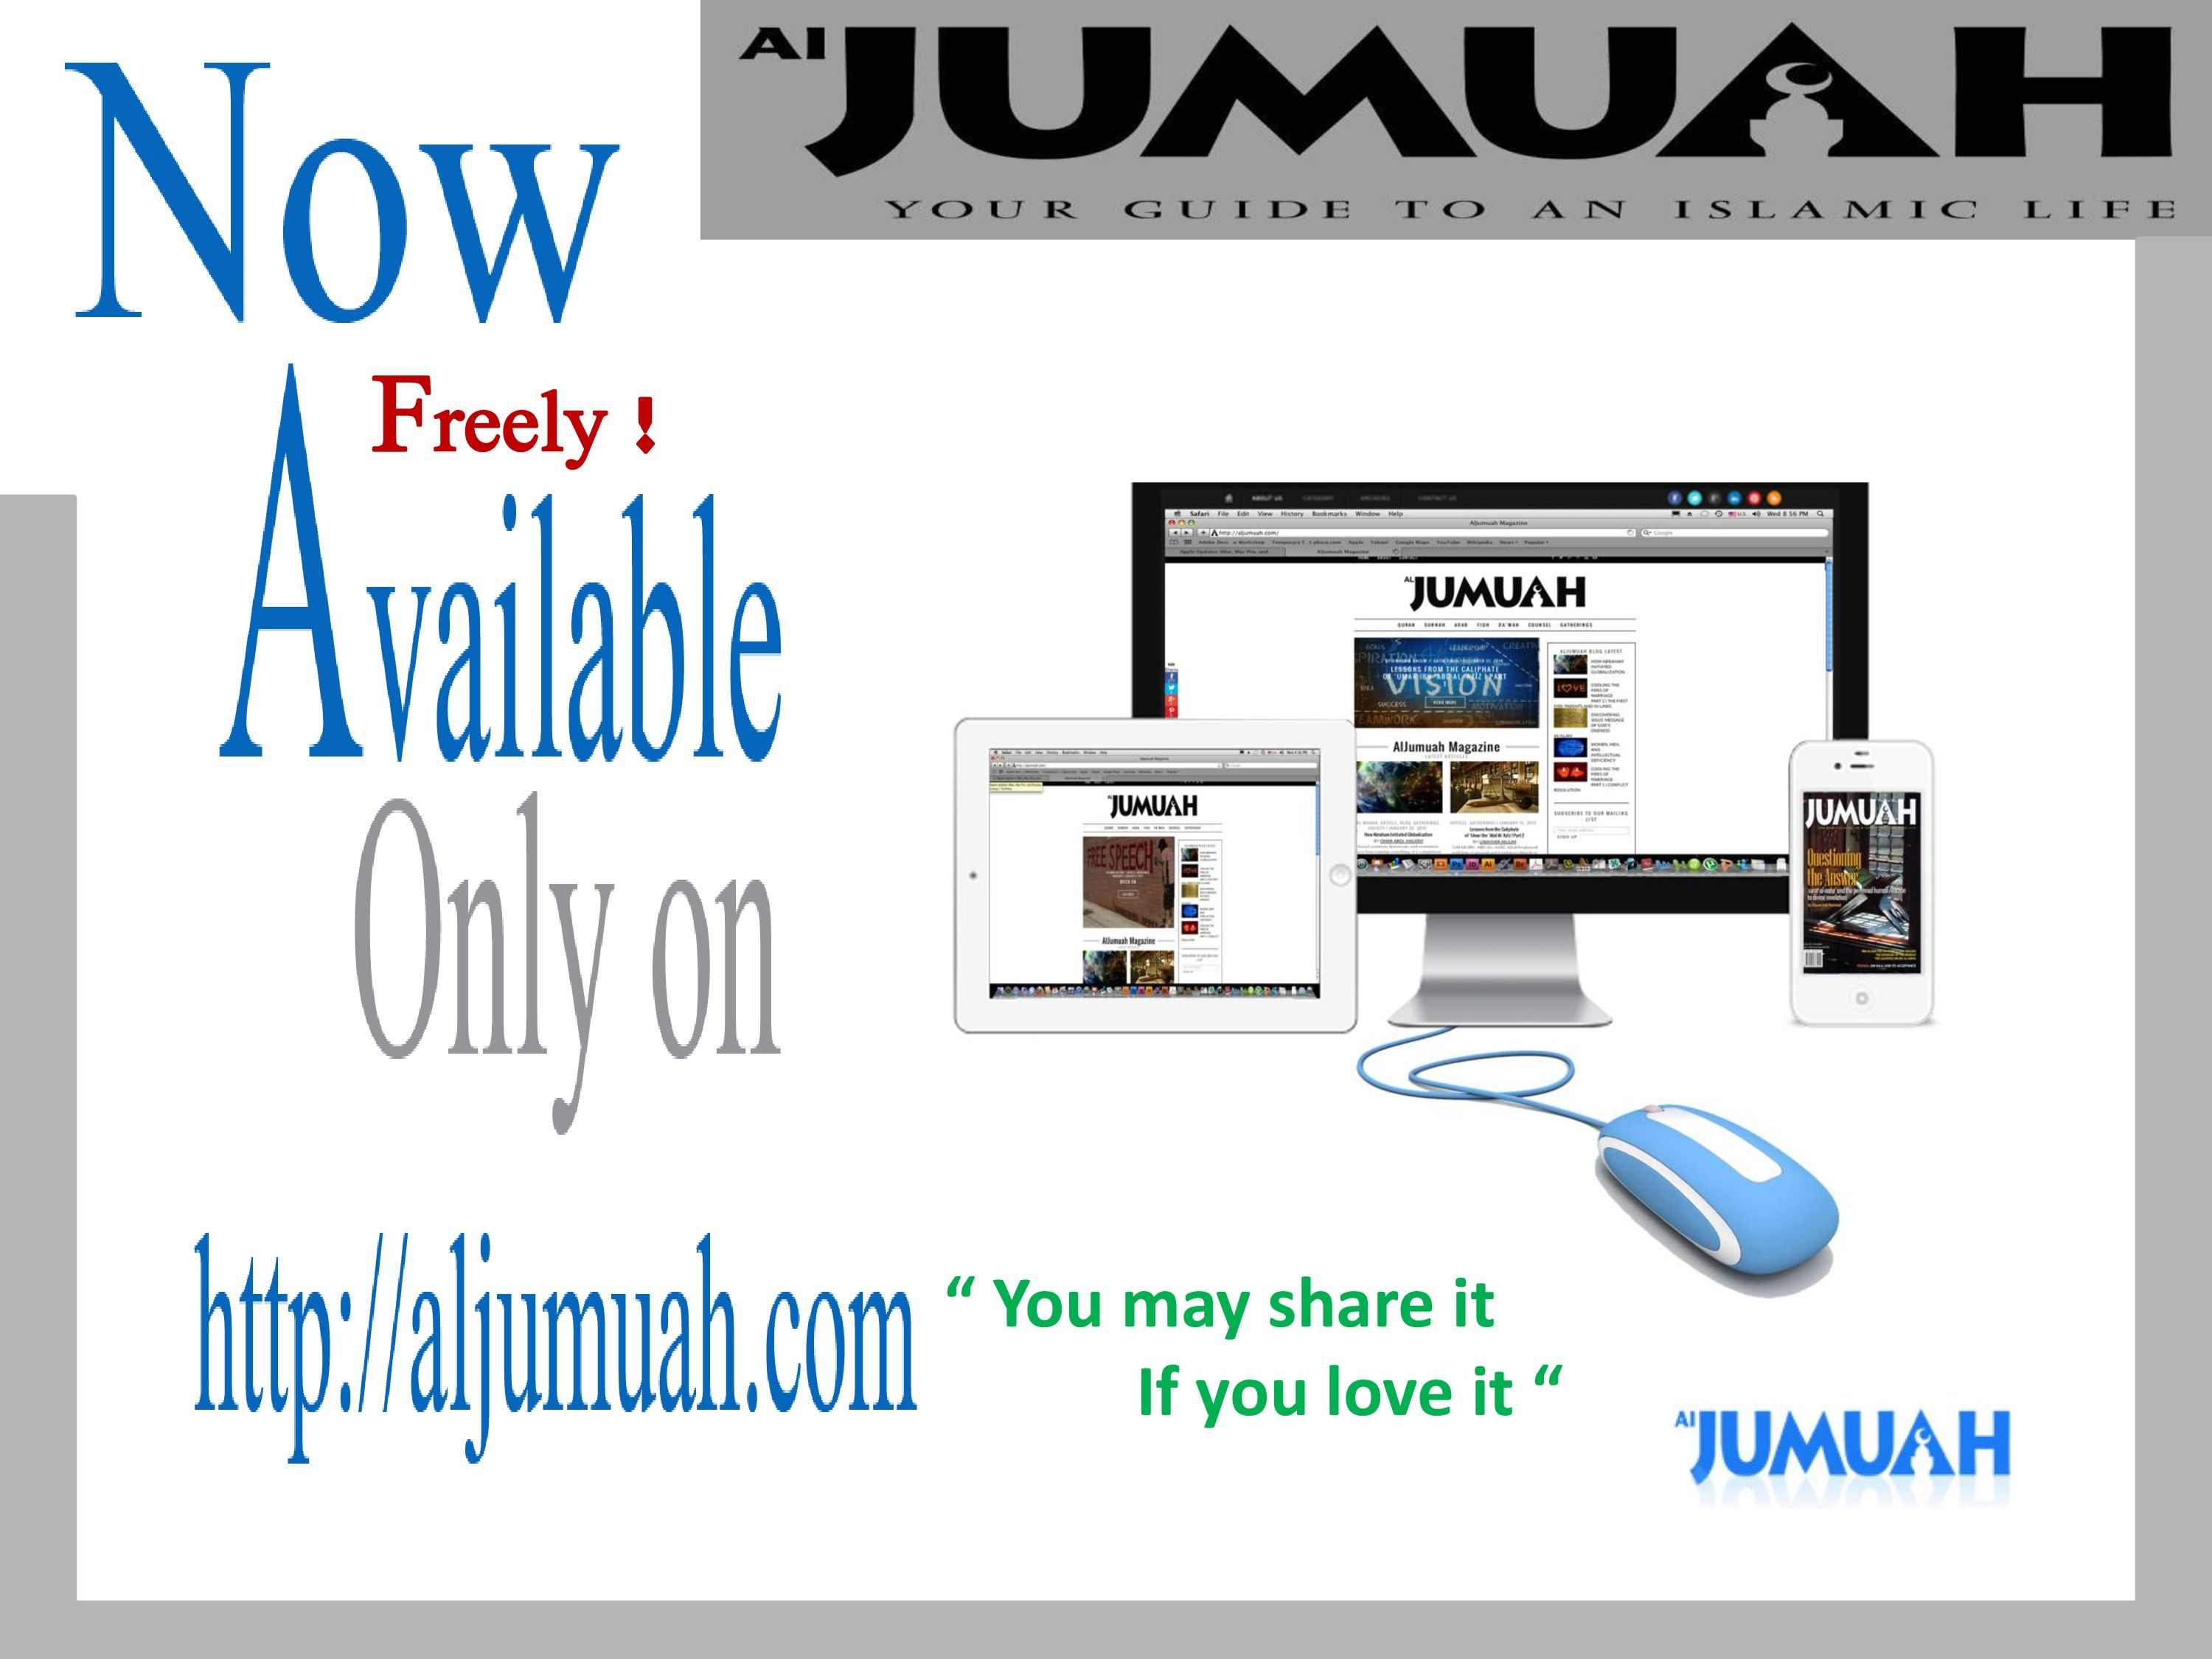 FREE SUBSCRIPTION !!! Life, Free subscriptions, Islam